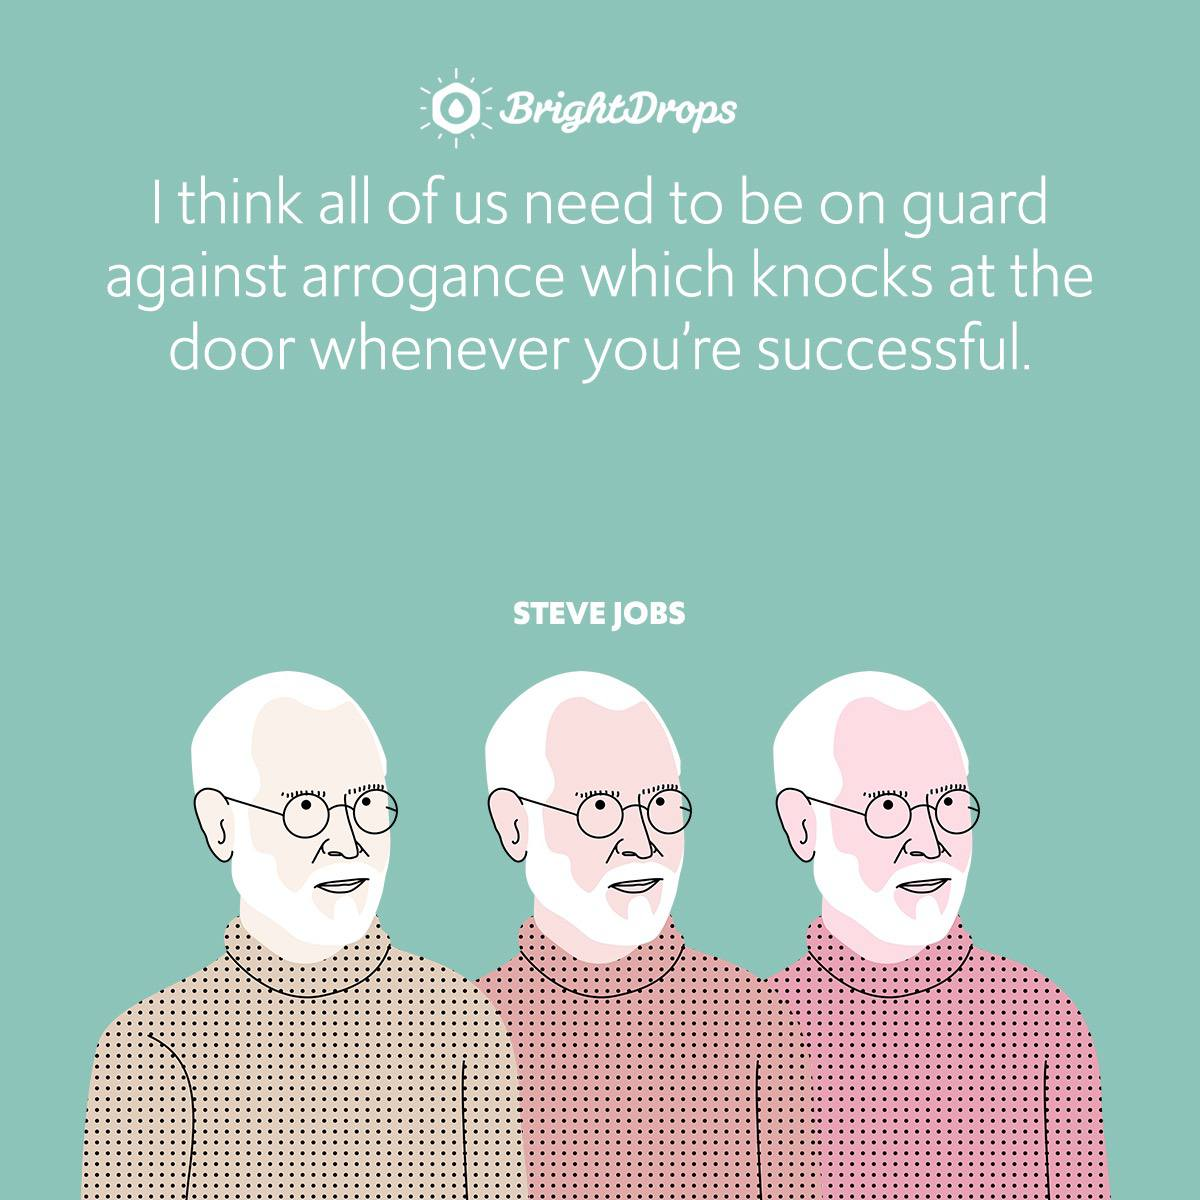 I think all of us need to be on guard against arrogance which knocks at the door whenever you're successful.